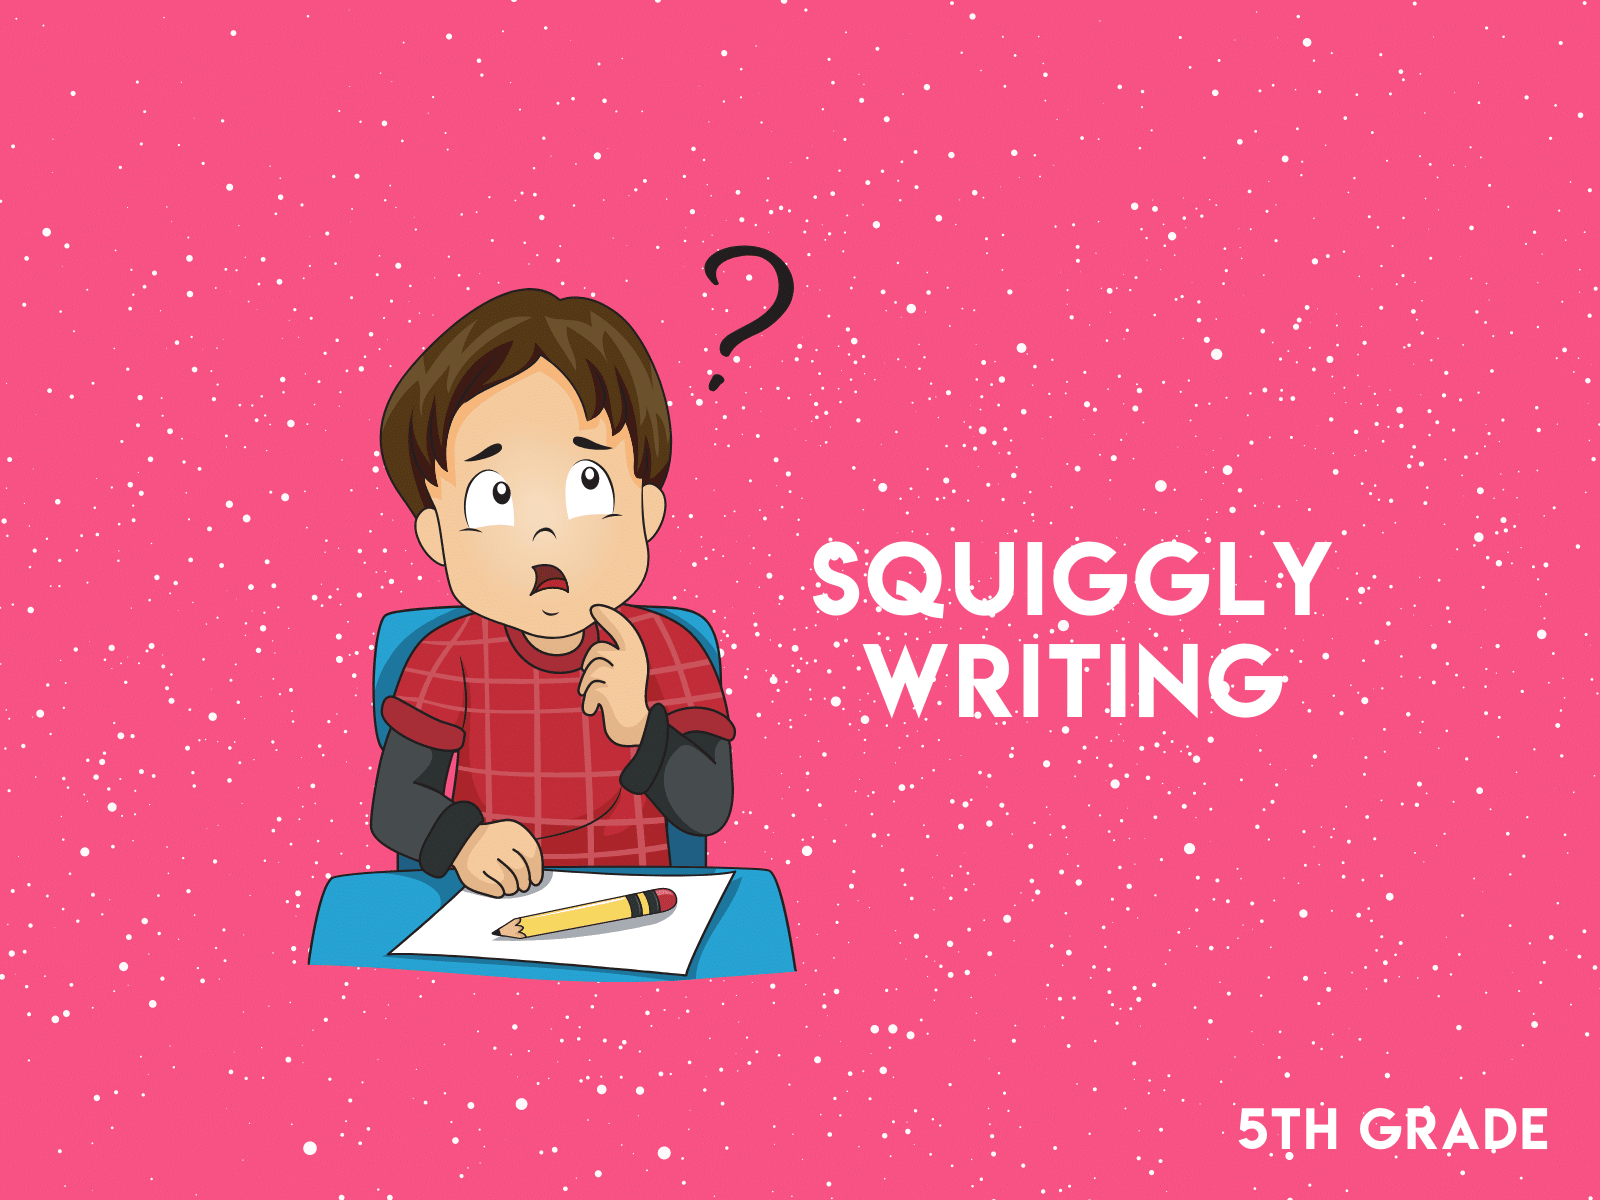 Draw a picture and write a story with this squiggly writing prompt for fifth graders.